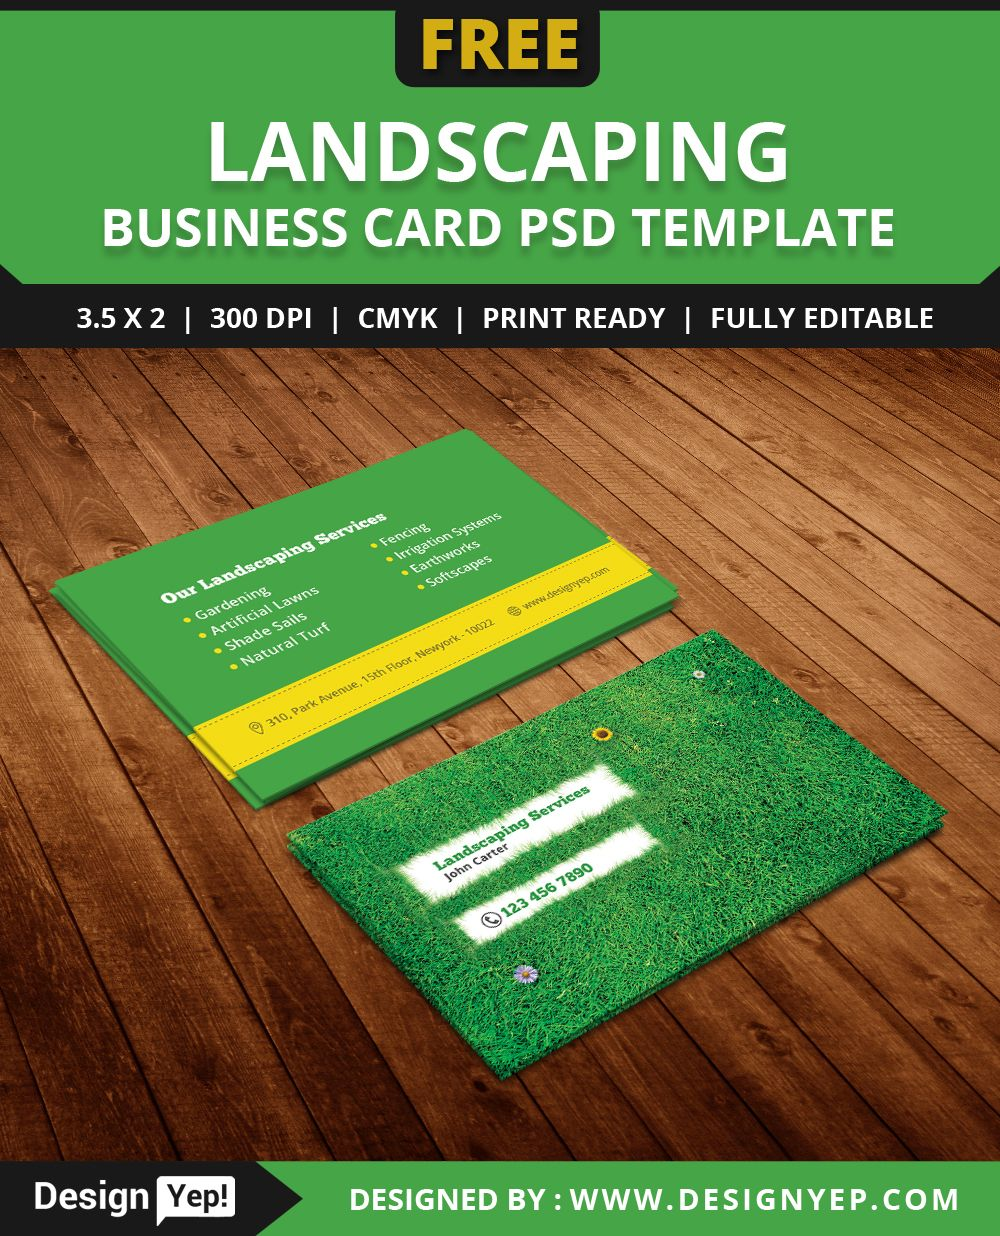 lawn care landscaping service business card logos landscaping business card template psd